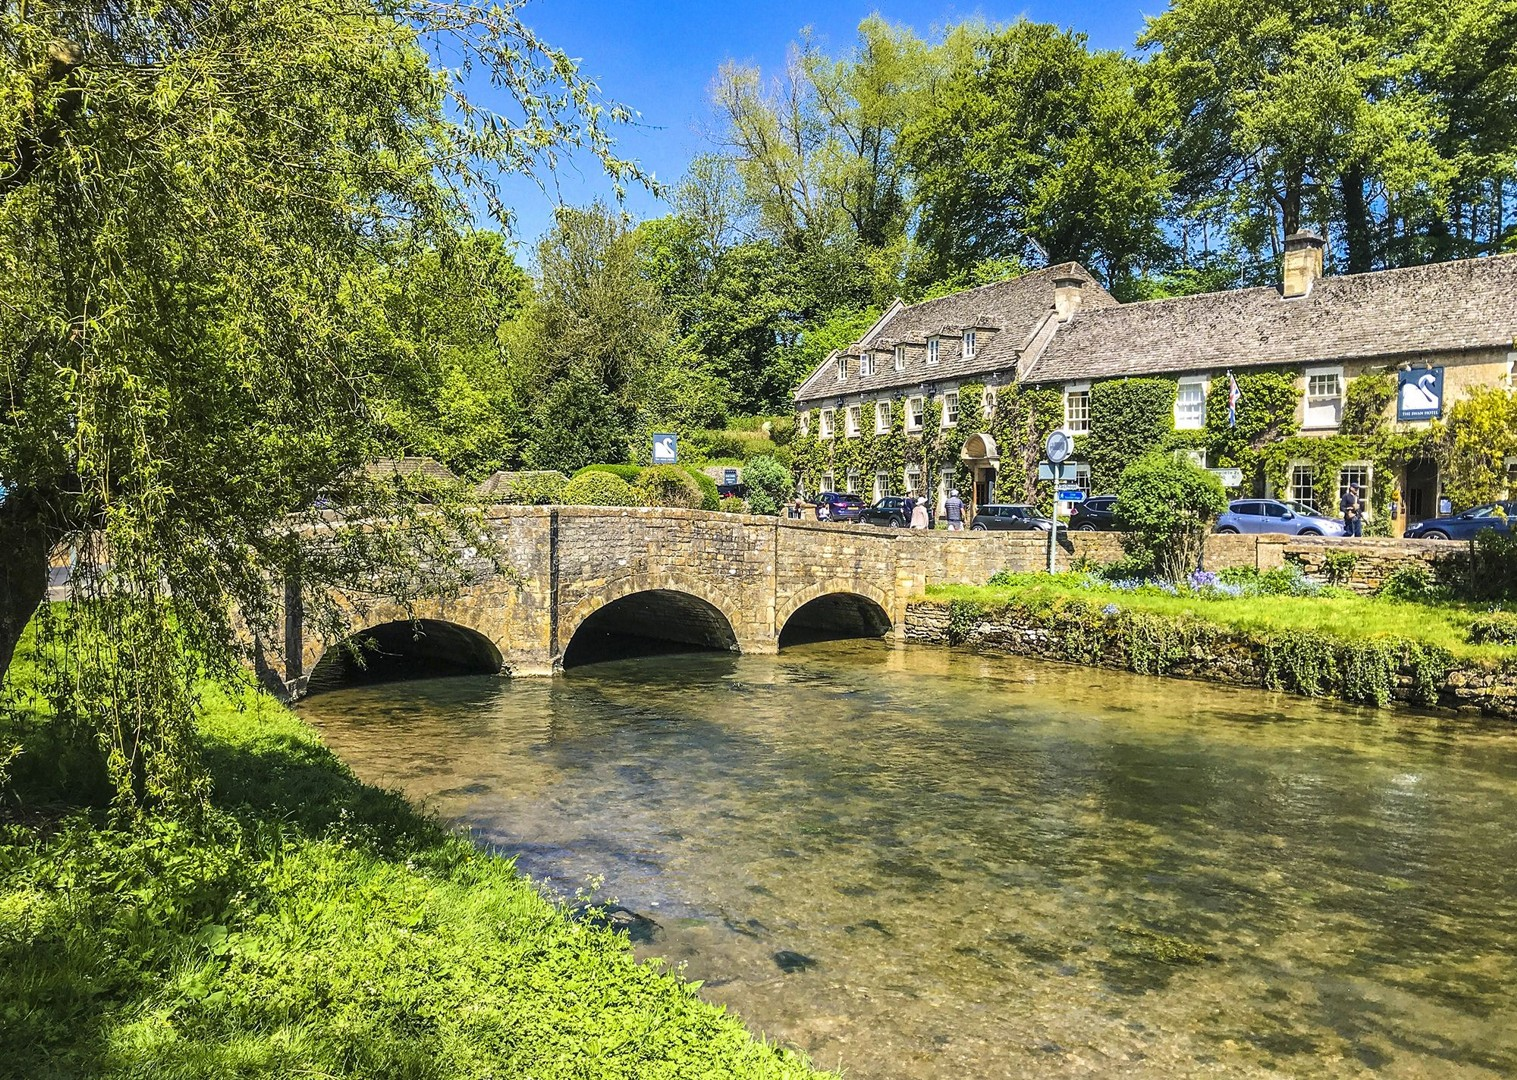 local-pubs-accommodations-cycling-leisure-countryside-quiet-roads-self-guided.jpg - UK - Cotswolds - Bourton-on-the-Water - Self-Guided Leisure Cycling Holiday - Leisure Cycling